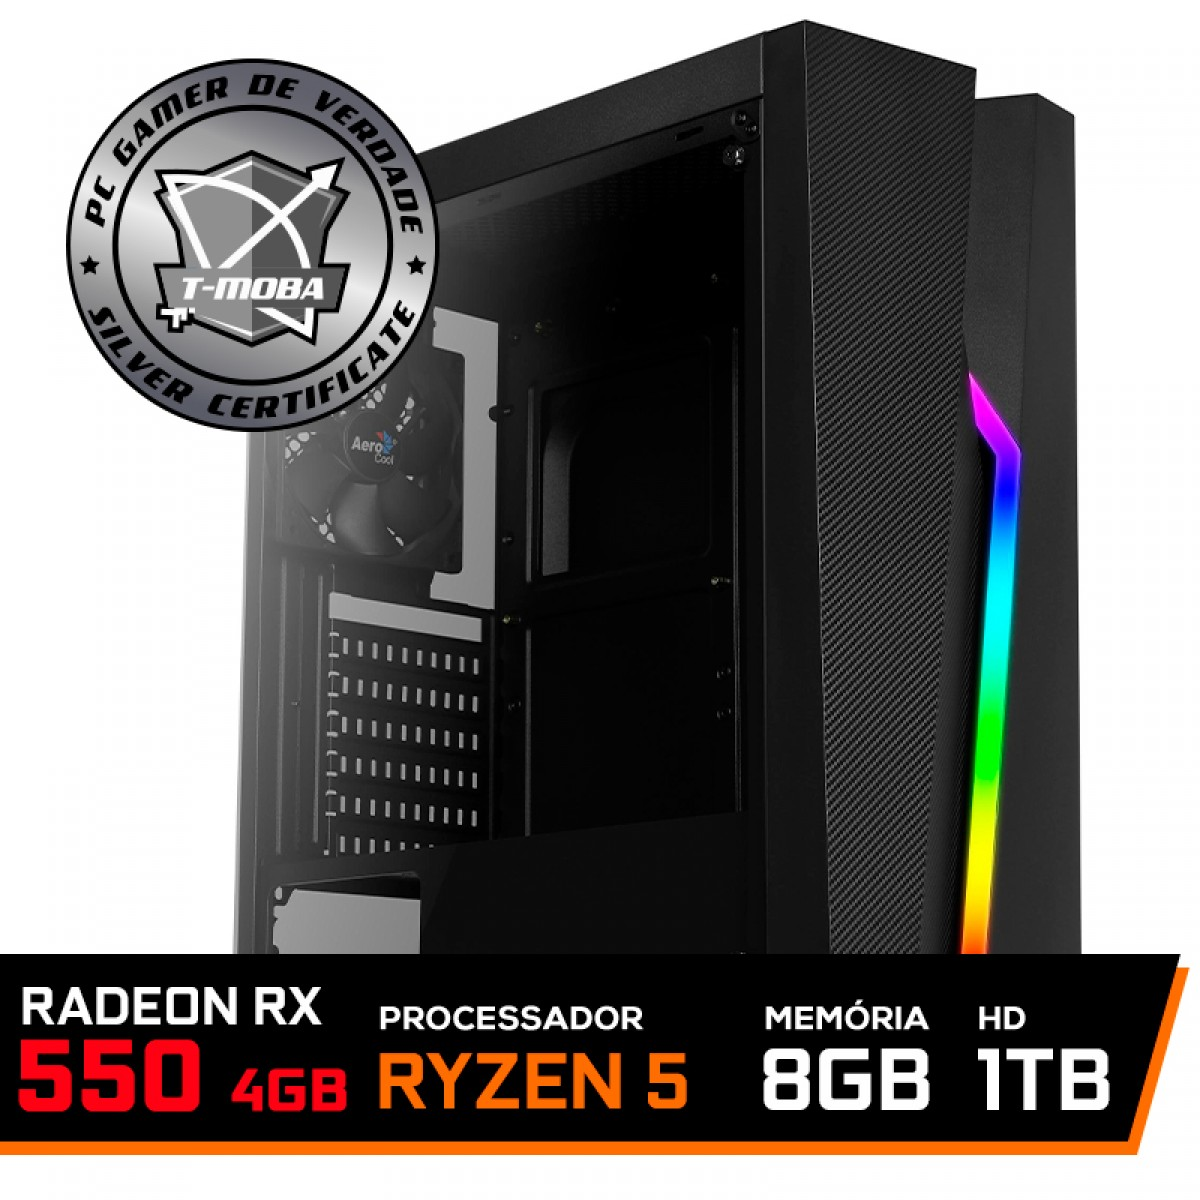 Pc Gamer T-Moba Ultimate Lvl-2 AMD Ryzen 5 3400G / Radeon Rx 550 4GB / DDR4 8GB / HD 1TB